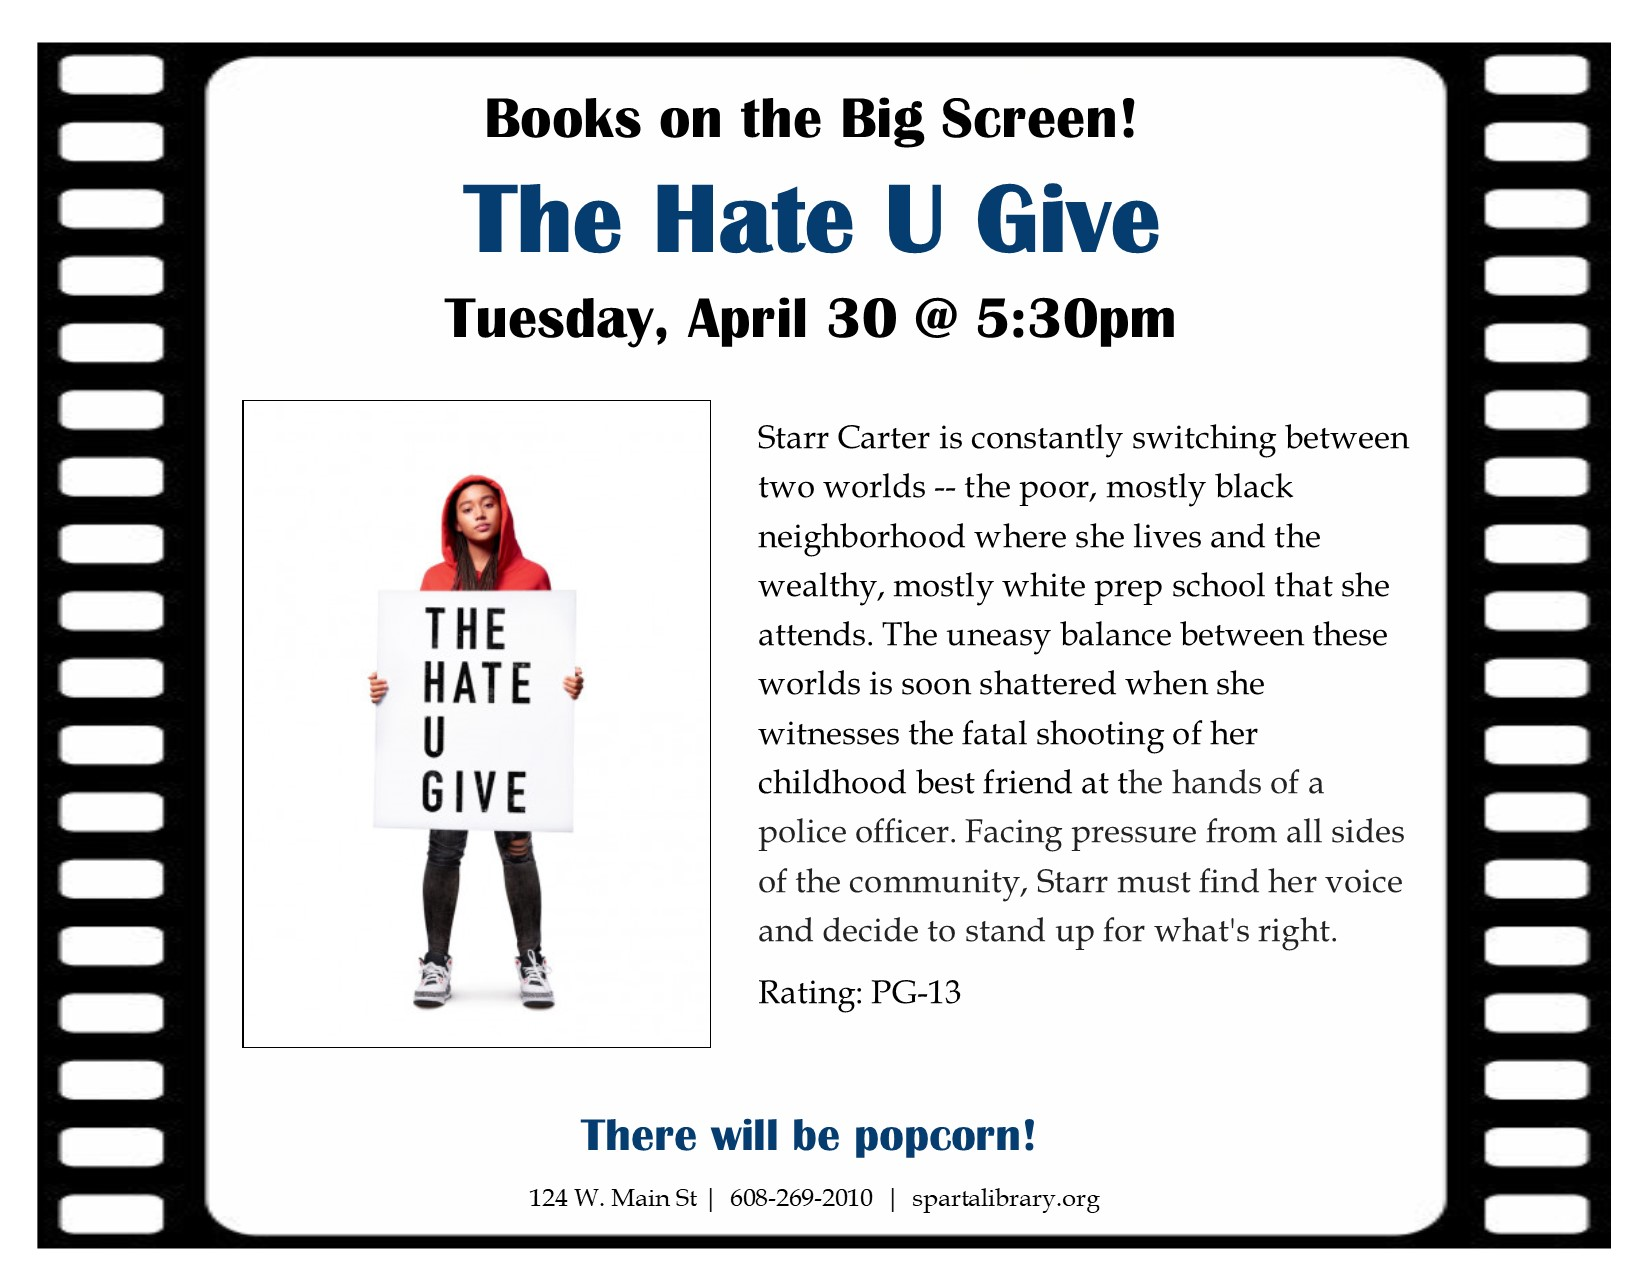 Books on the Big Screen: The Hate U Give @ Sparta Free Library